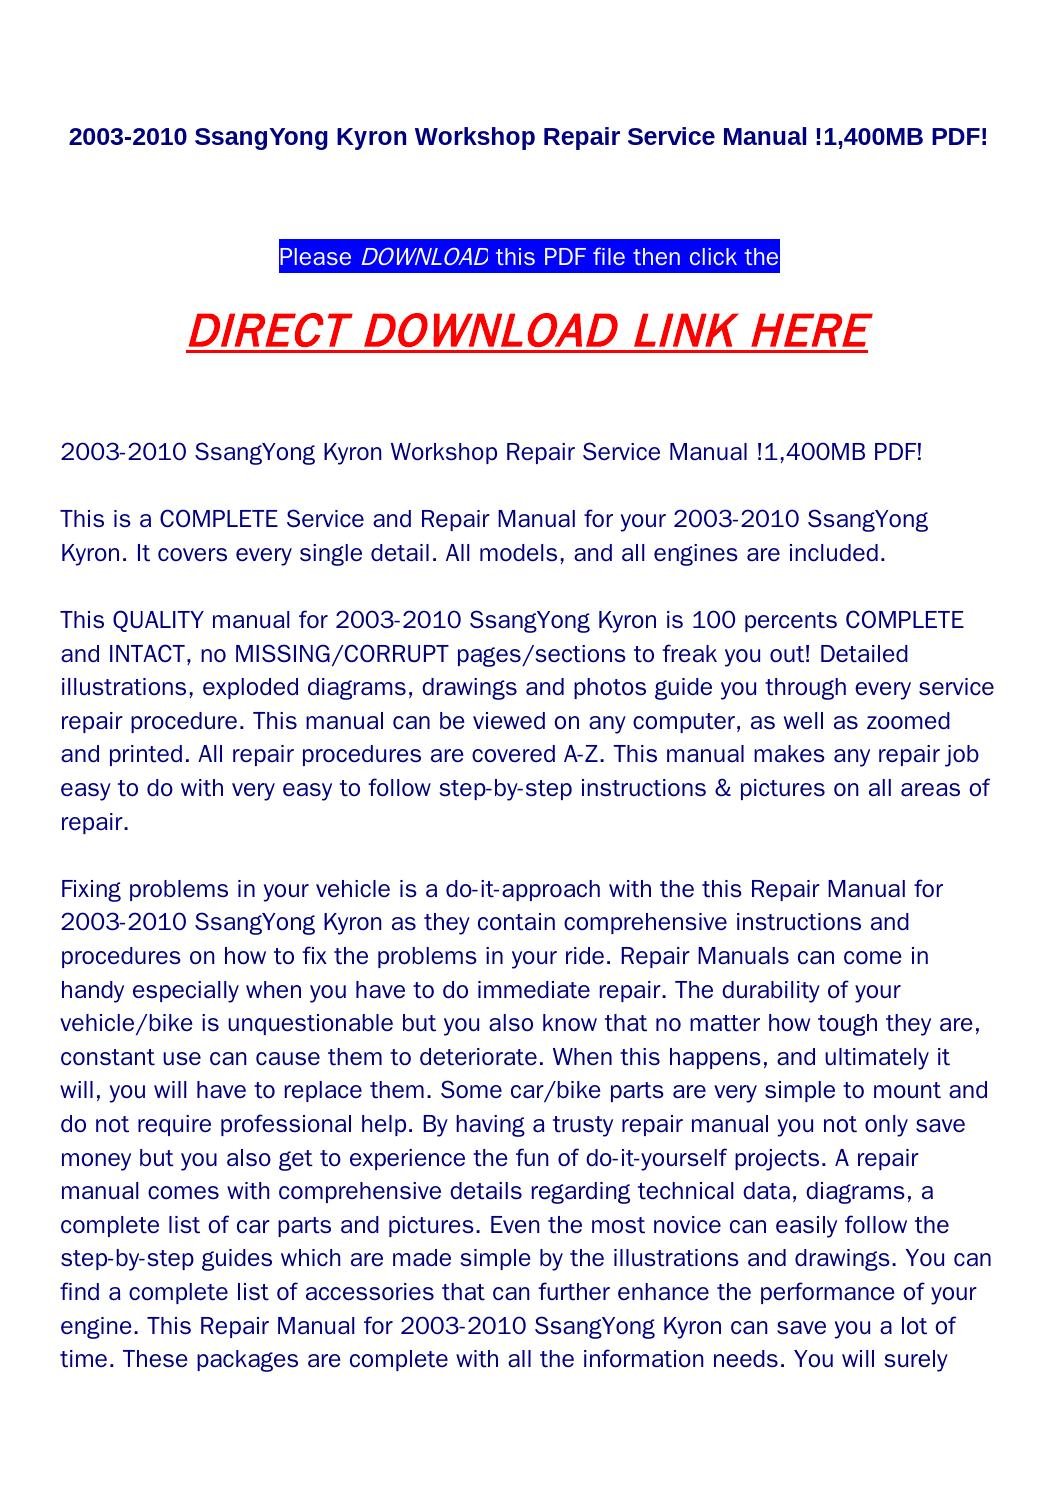 2003 2010 ssangyong kyron workshop repair service manual !1,400mb pdf! by  haoxie - issuu